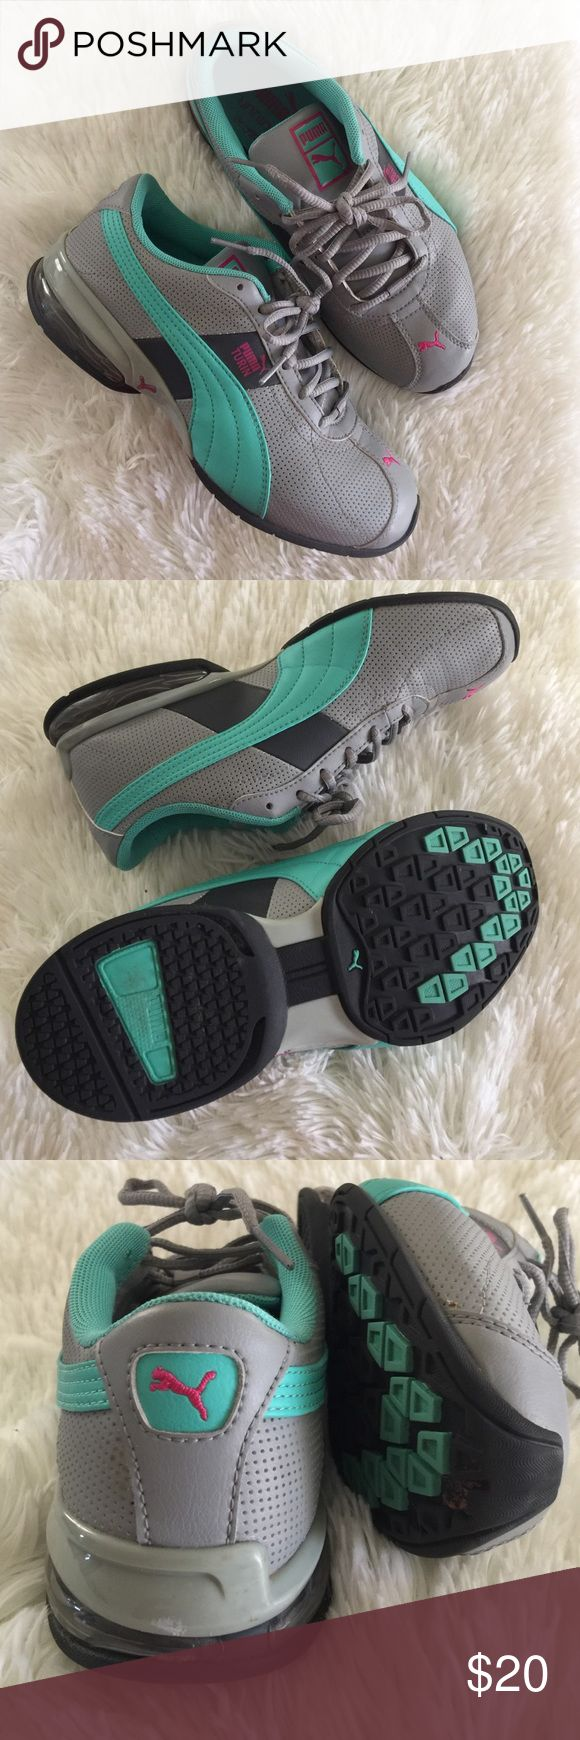 Puma Sneakers Pre-owned Puma sneakers. Size 7 in US woman's size. In good used condition with more life to give. Colors: gray, mint green and pink Puma emblem. Puma Shoes Athletic Shoes